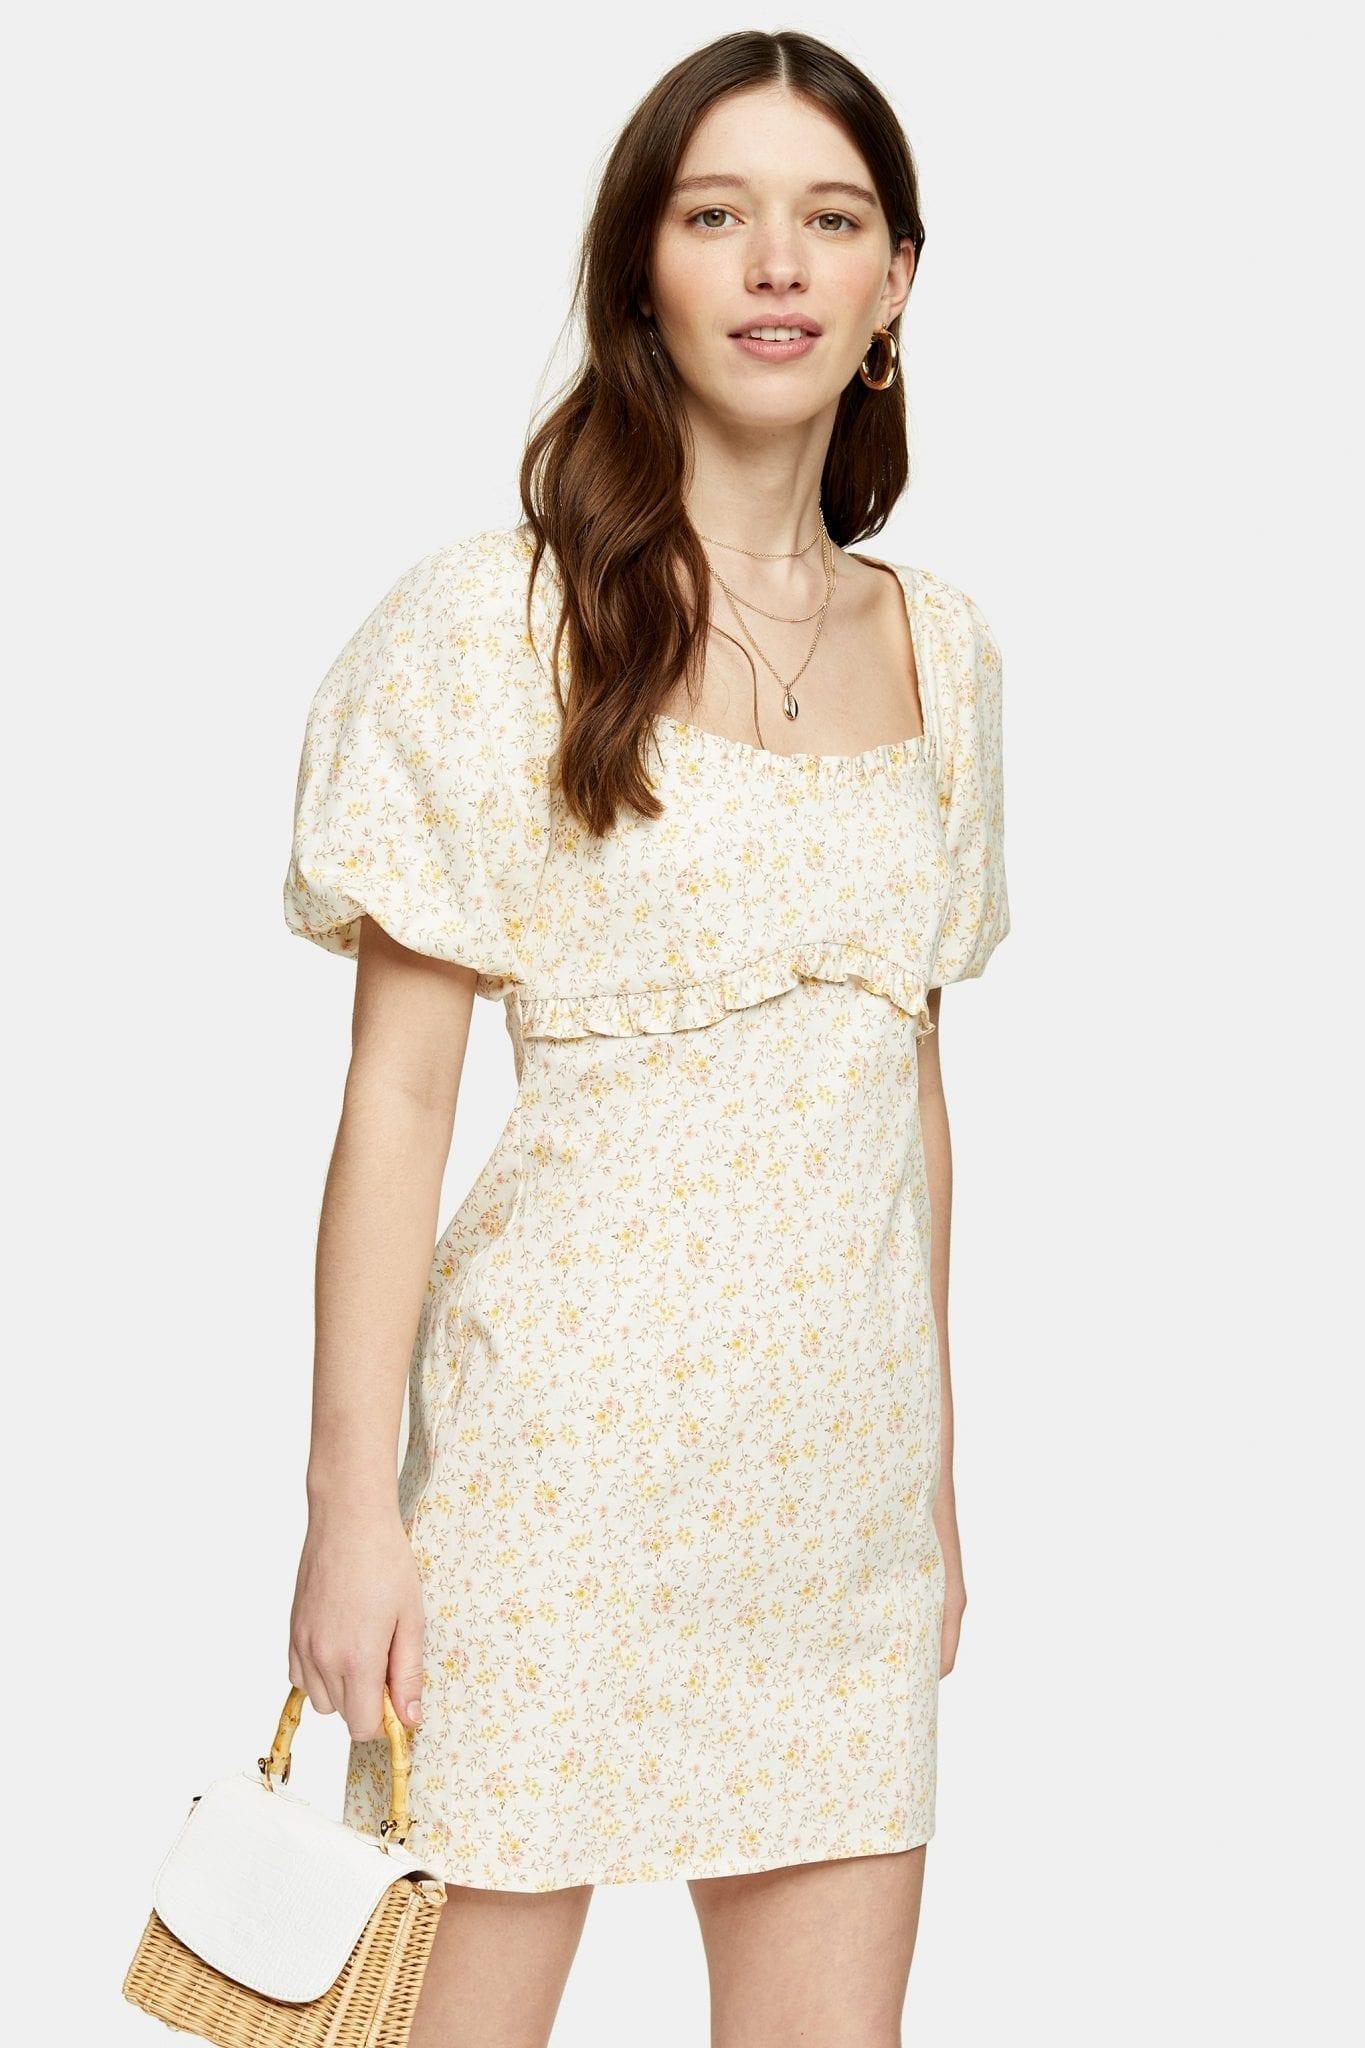 TOPSHOP Ecru Floral Poplin Tea Dress